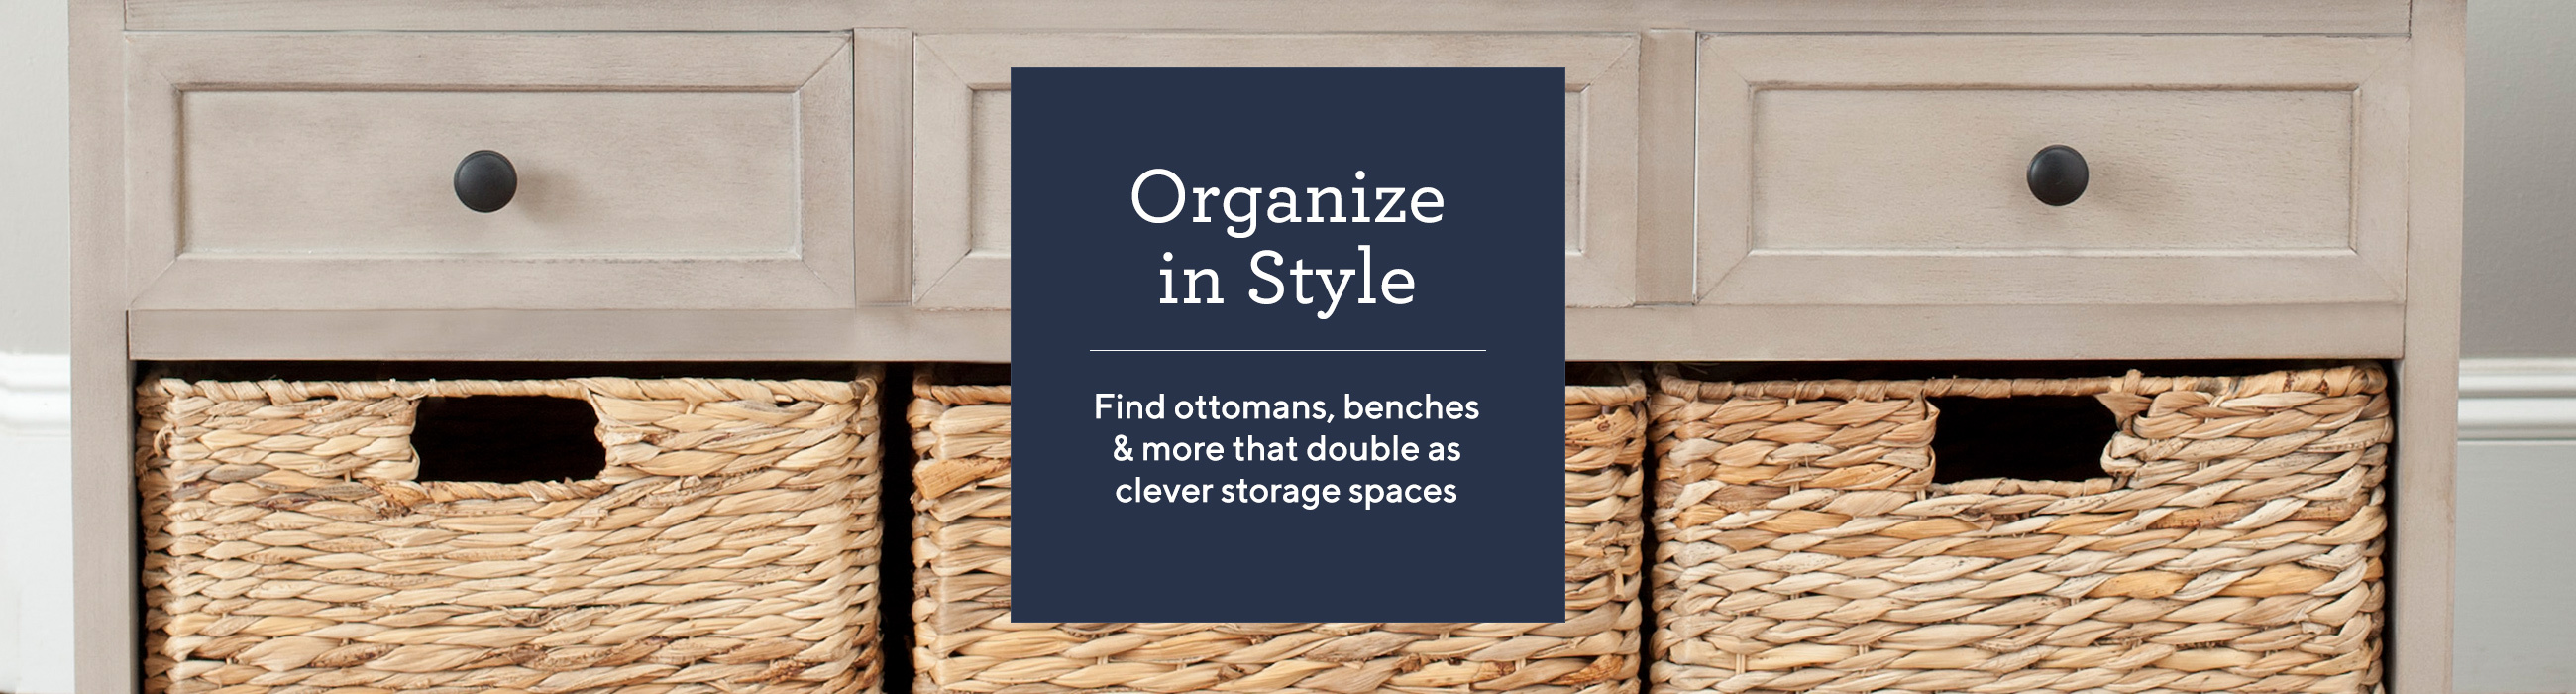 Organize in Style.   Find ottomans, benches & more that double as clever storage spaces